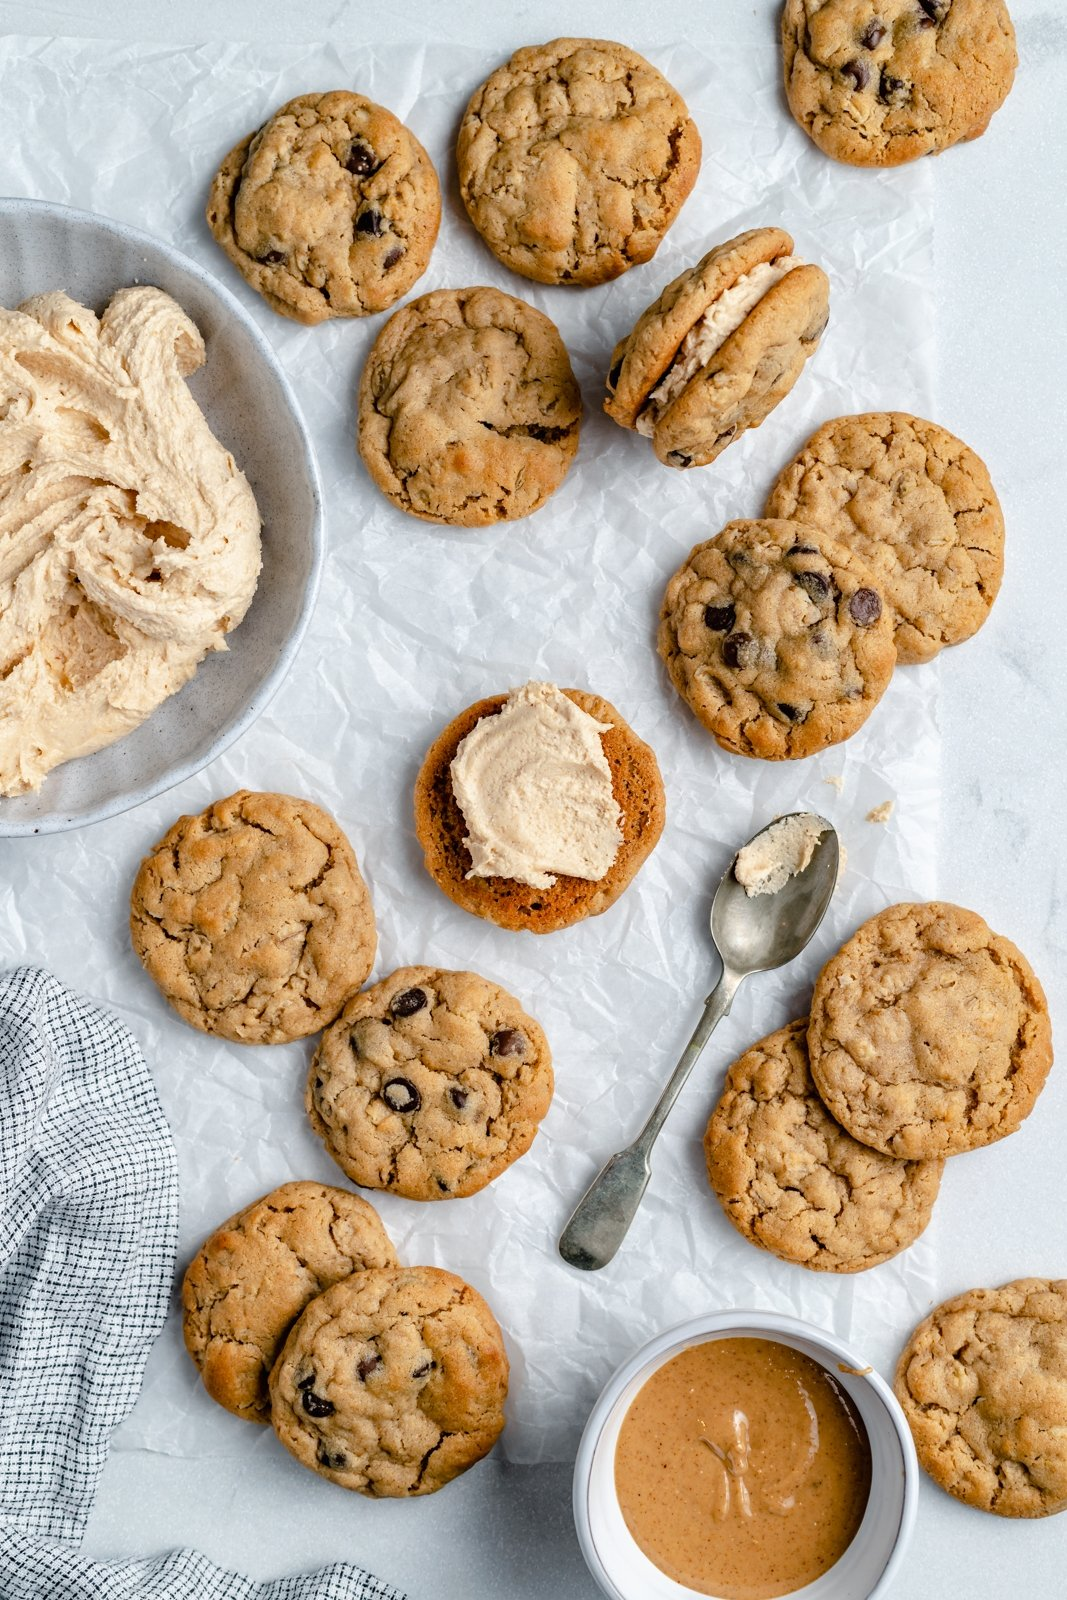 making peanut butter oatmeal cream pies with peanut butter frosting